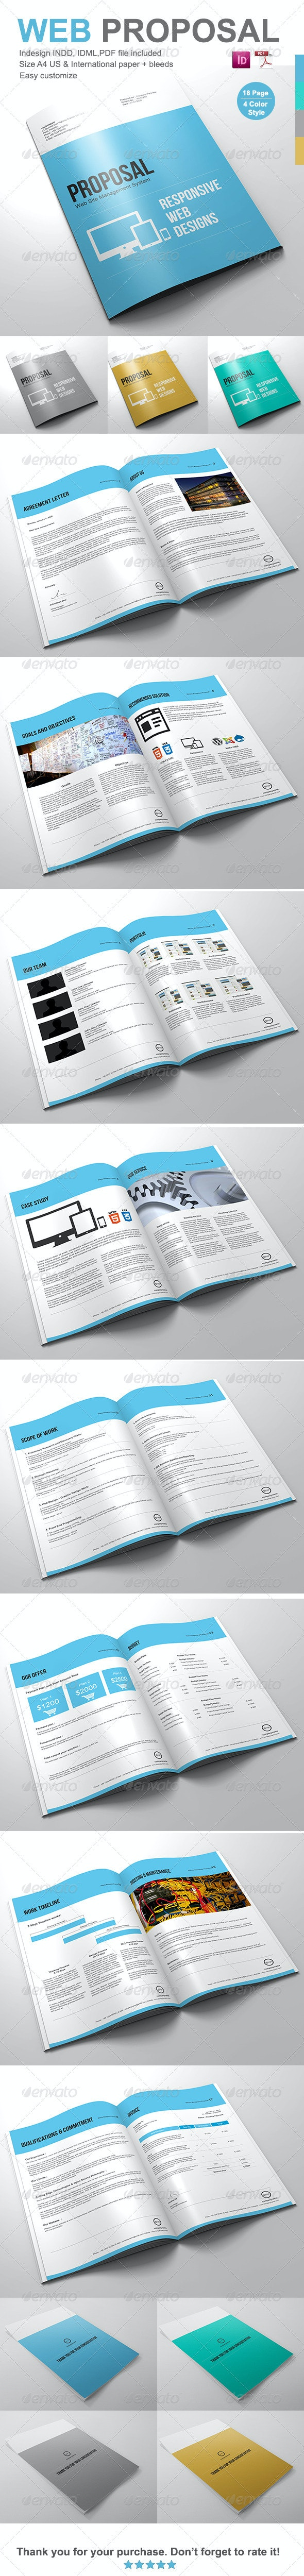 Gstudio Web Proposal Template - Proposals & Invoices Stationery